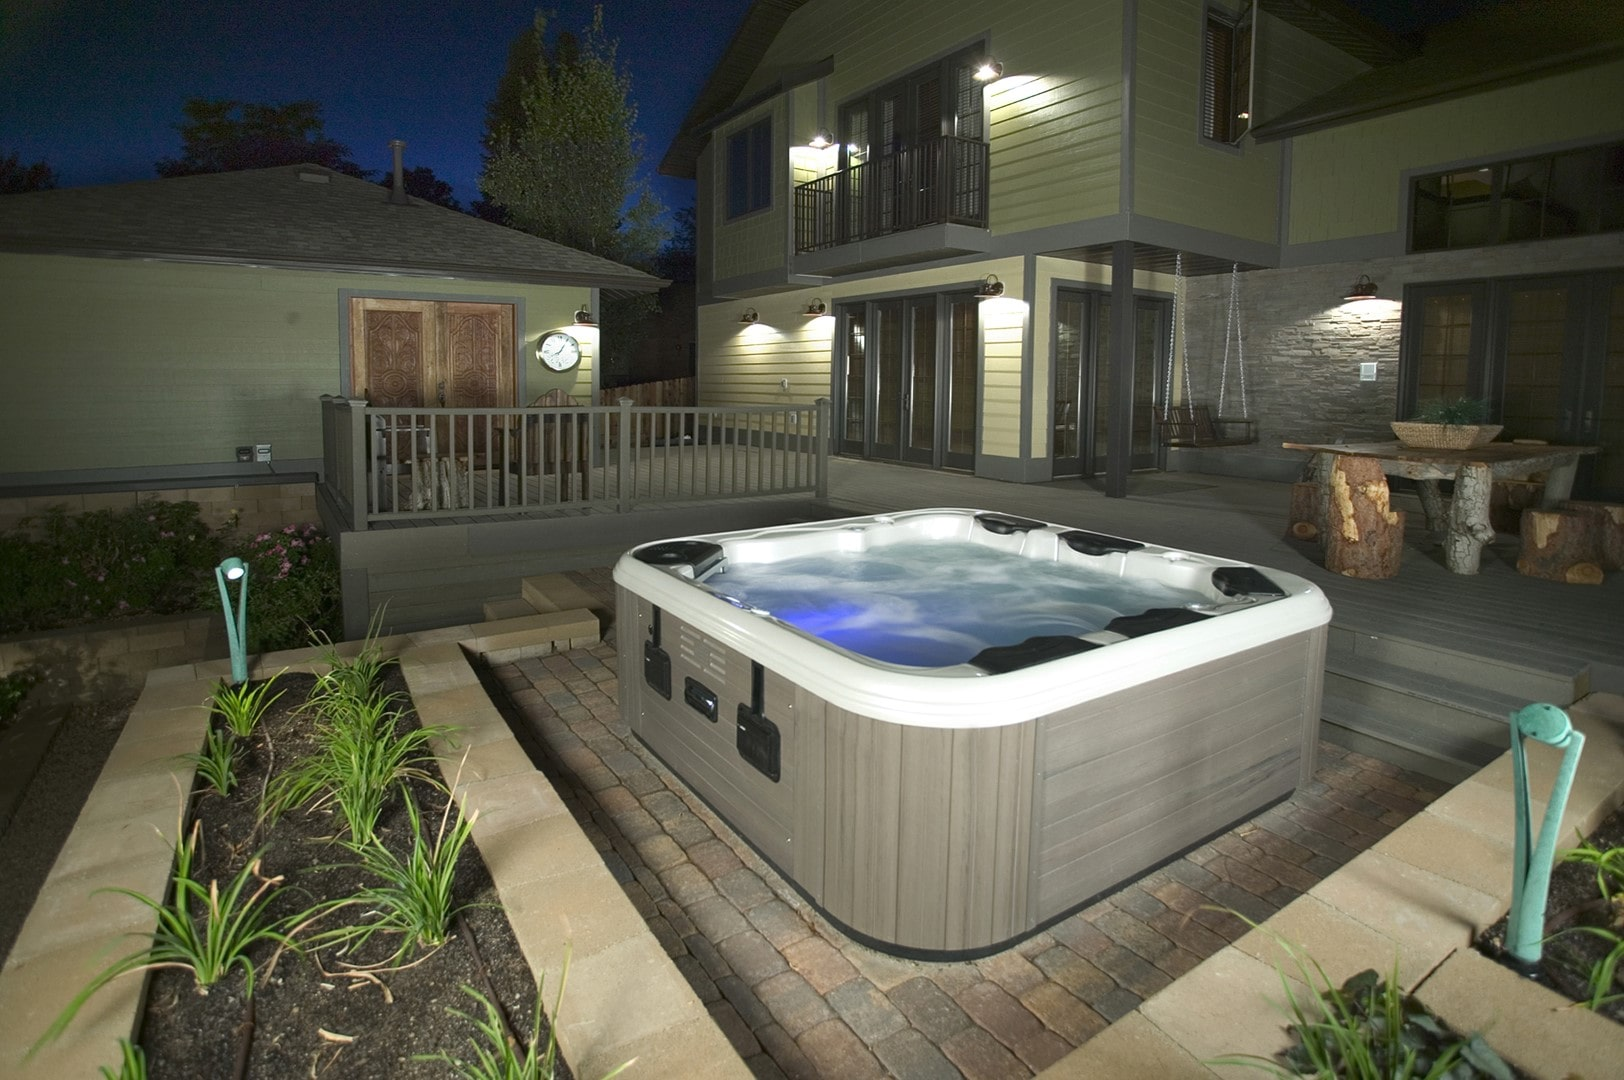 5 Tips on Buying a Hot Tub